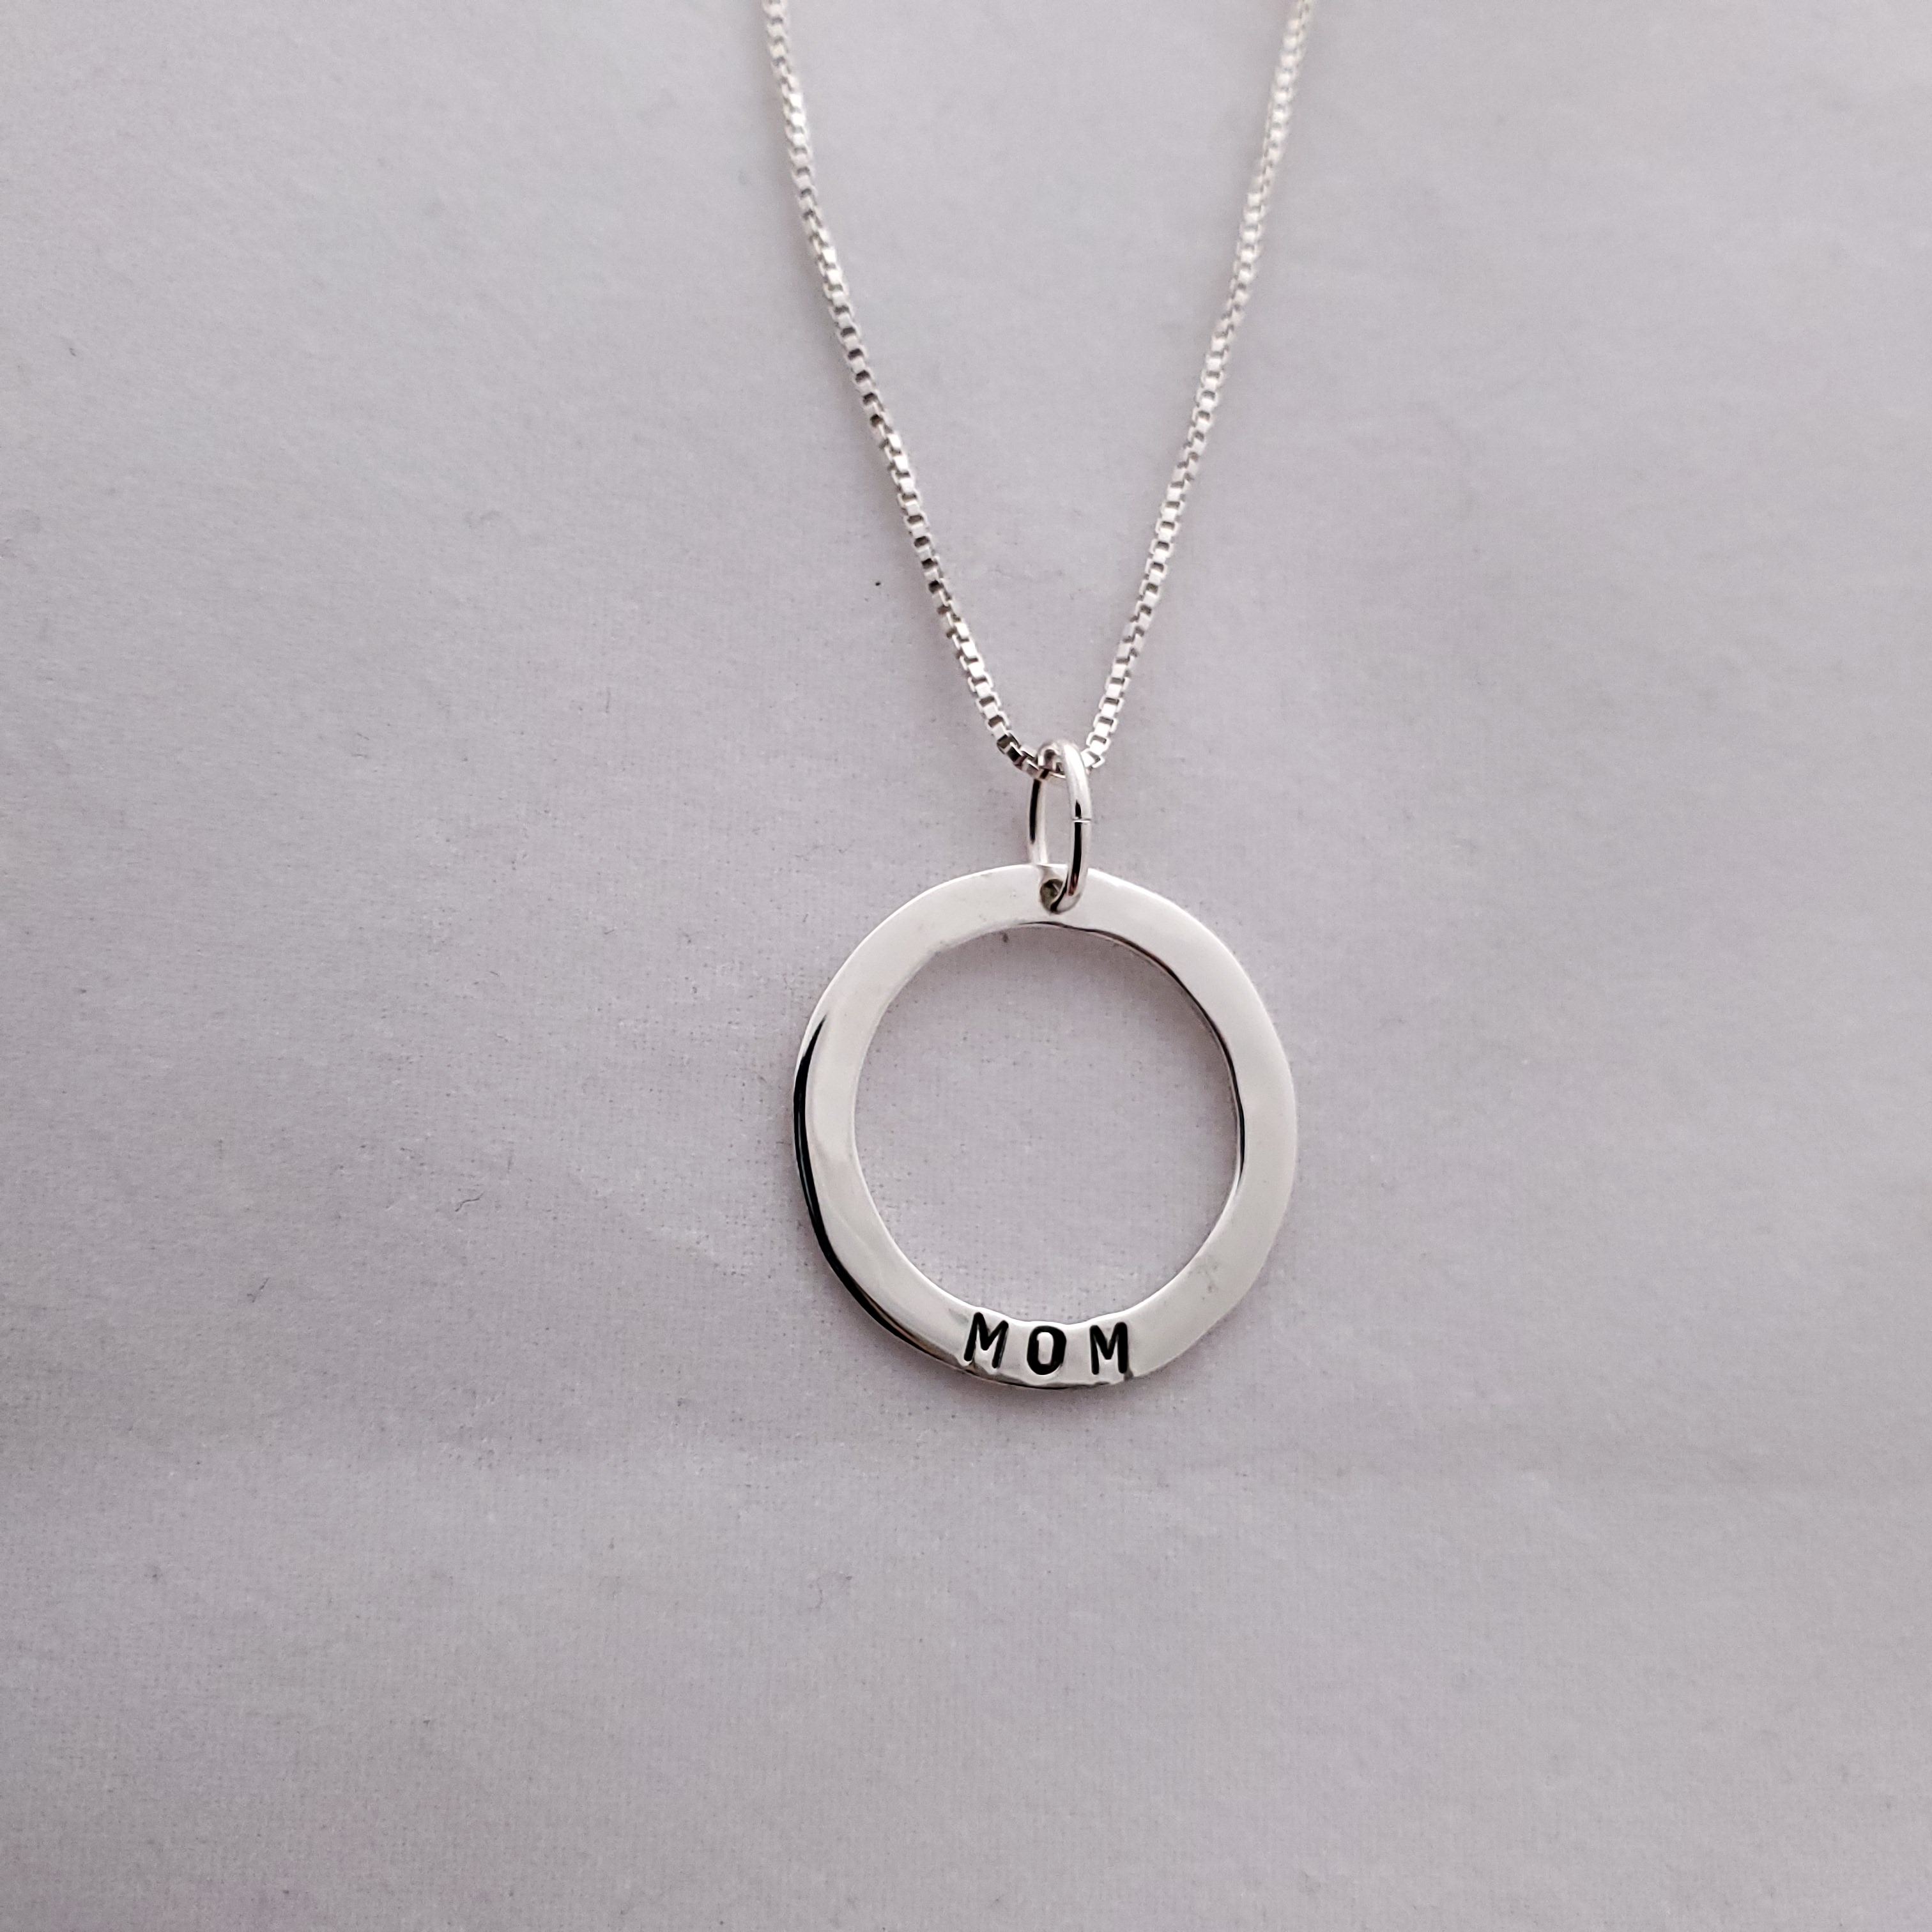 Silver circle necklace with MOM stamped on bottom of circle, hanging on chain